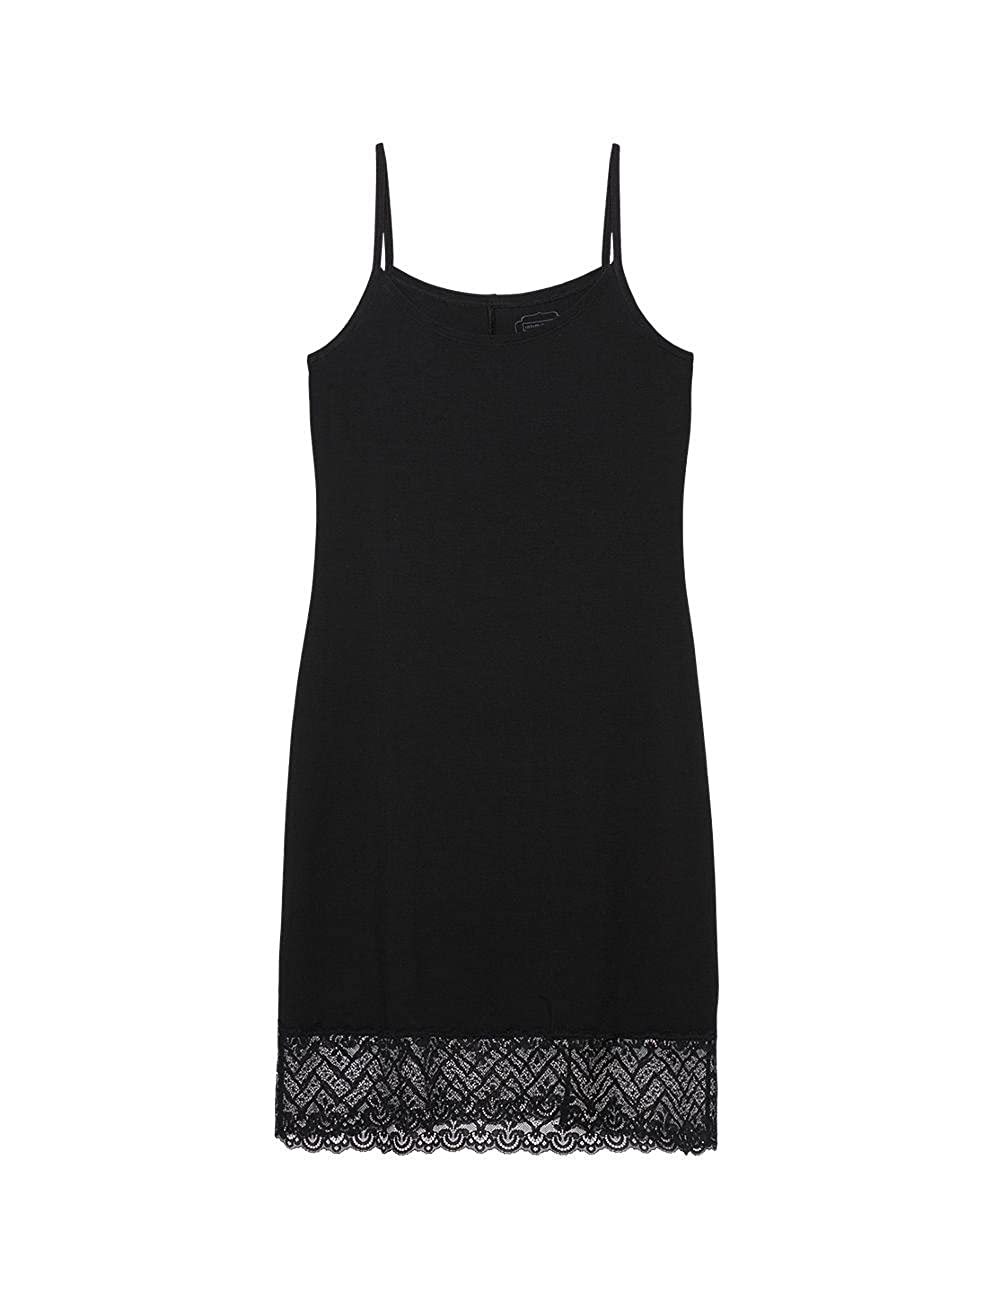 Intimissimi Womens Micromodal Slip with Lace Frill